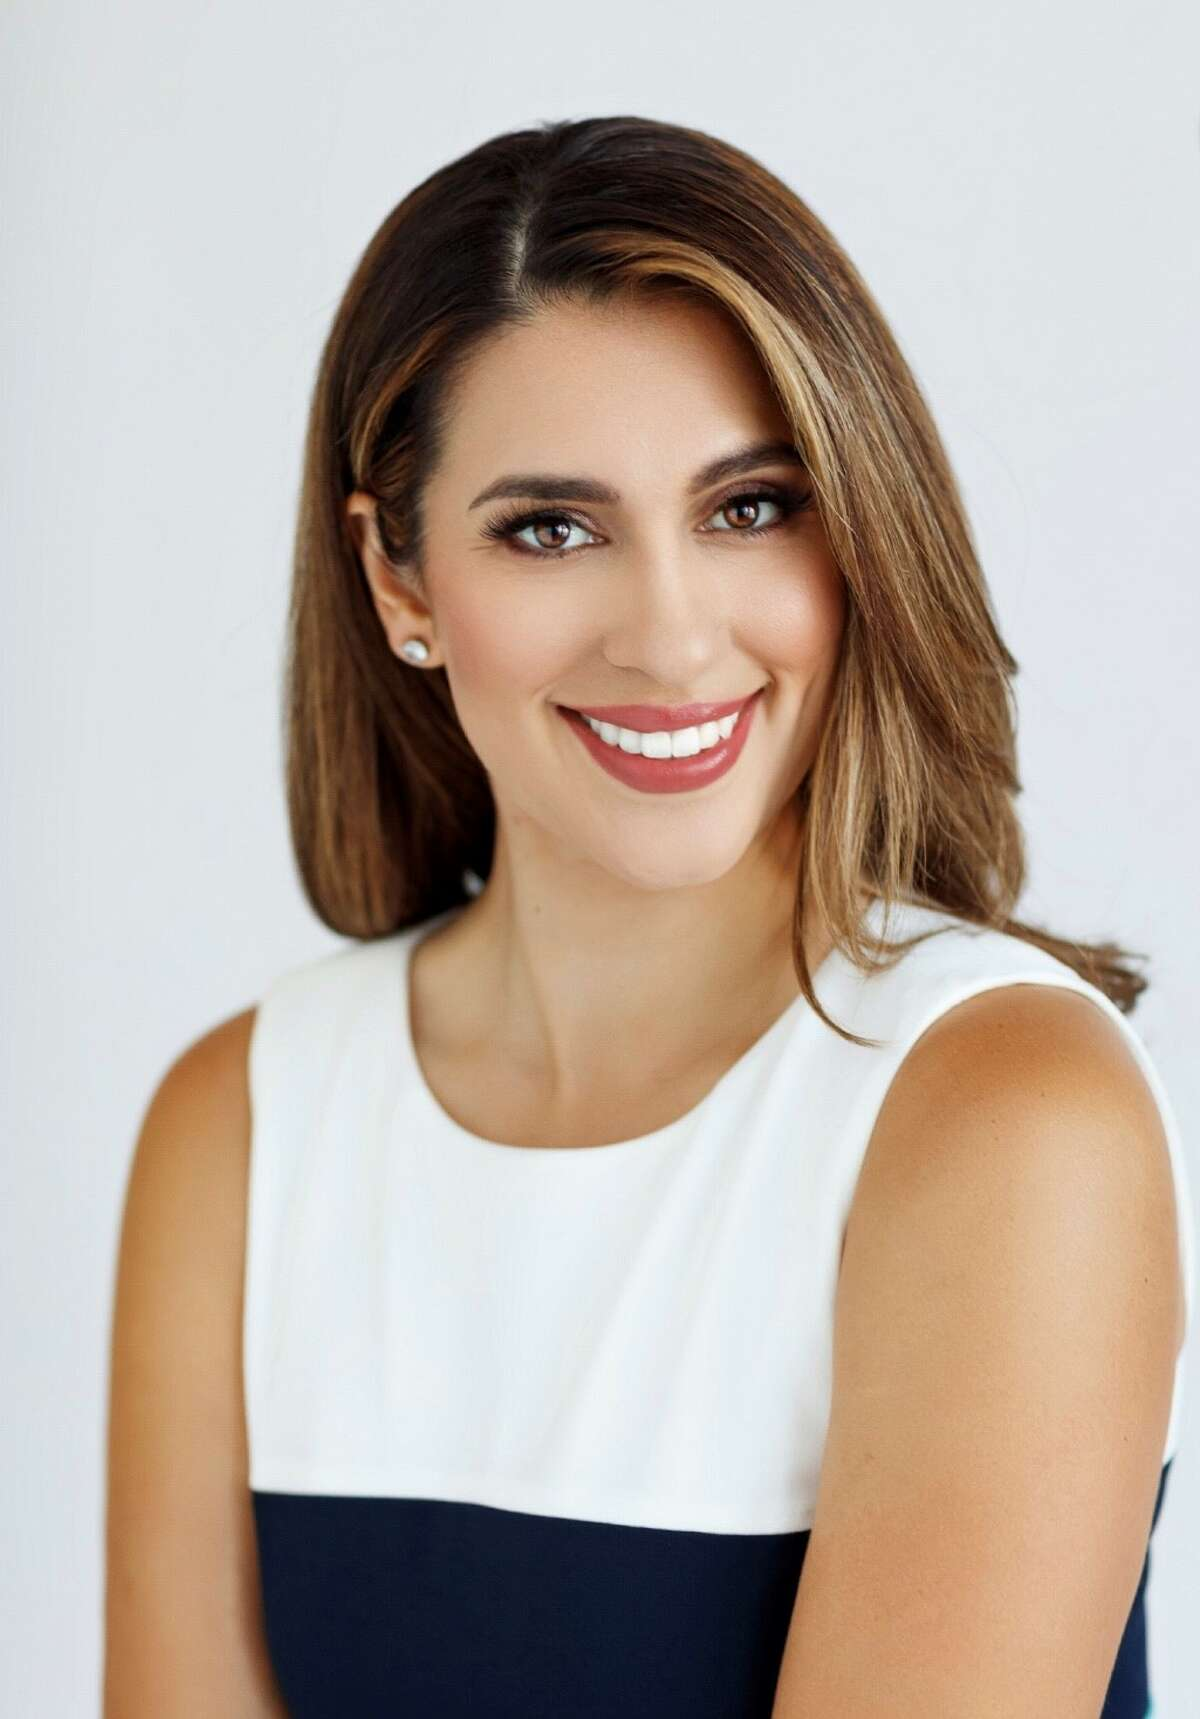 Simone De Alba will join Randy Beamer on News 4 San Antonio as his new co-anchor starting Dec. 3.